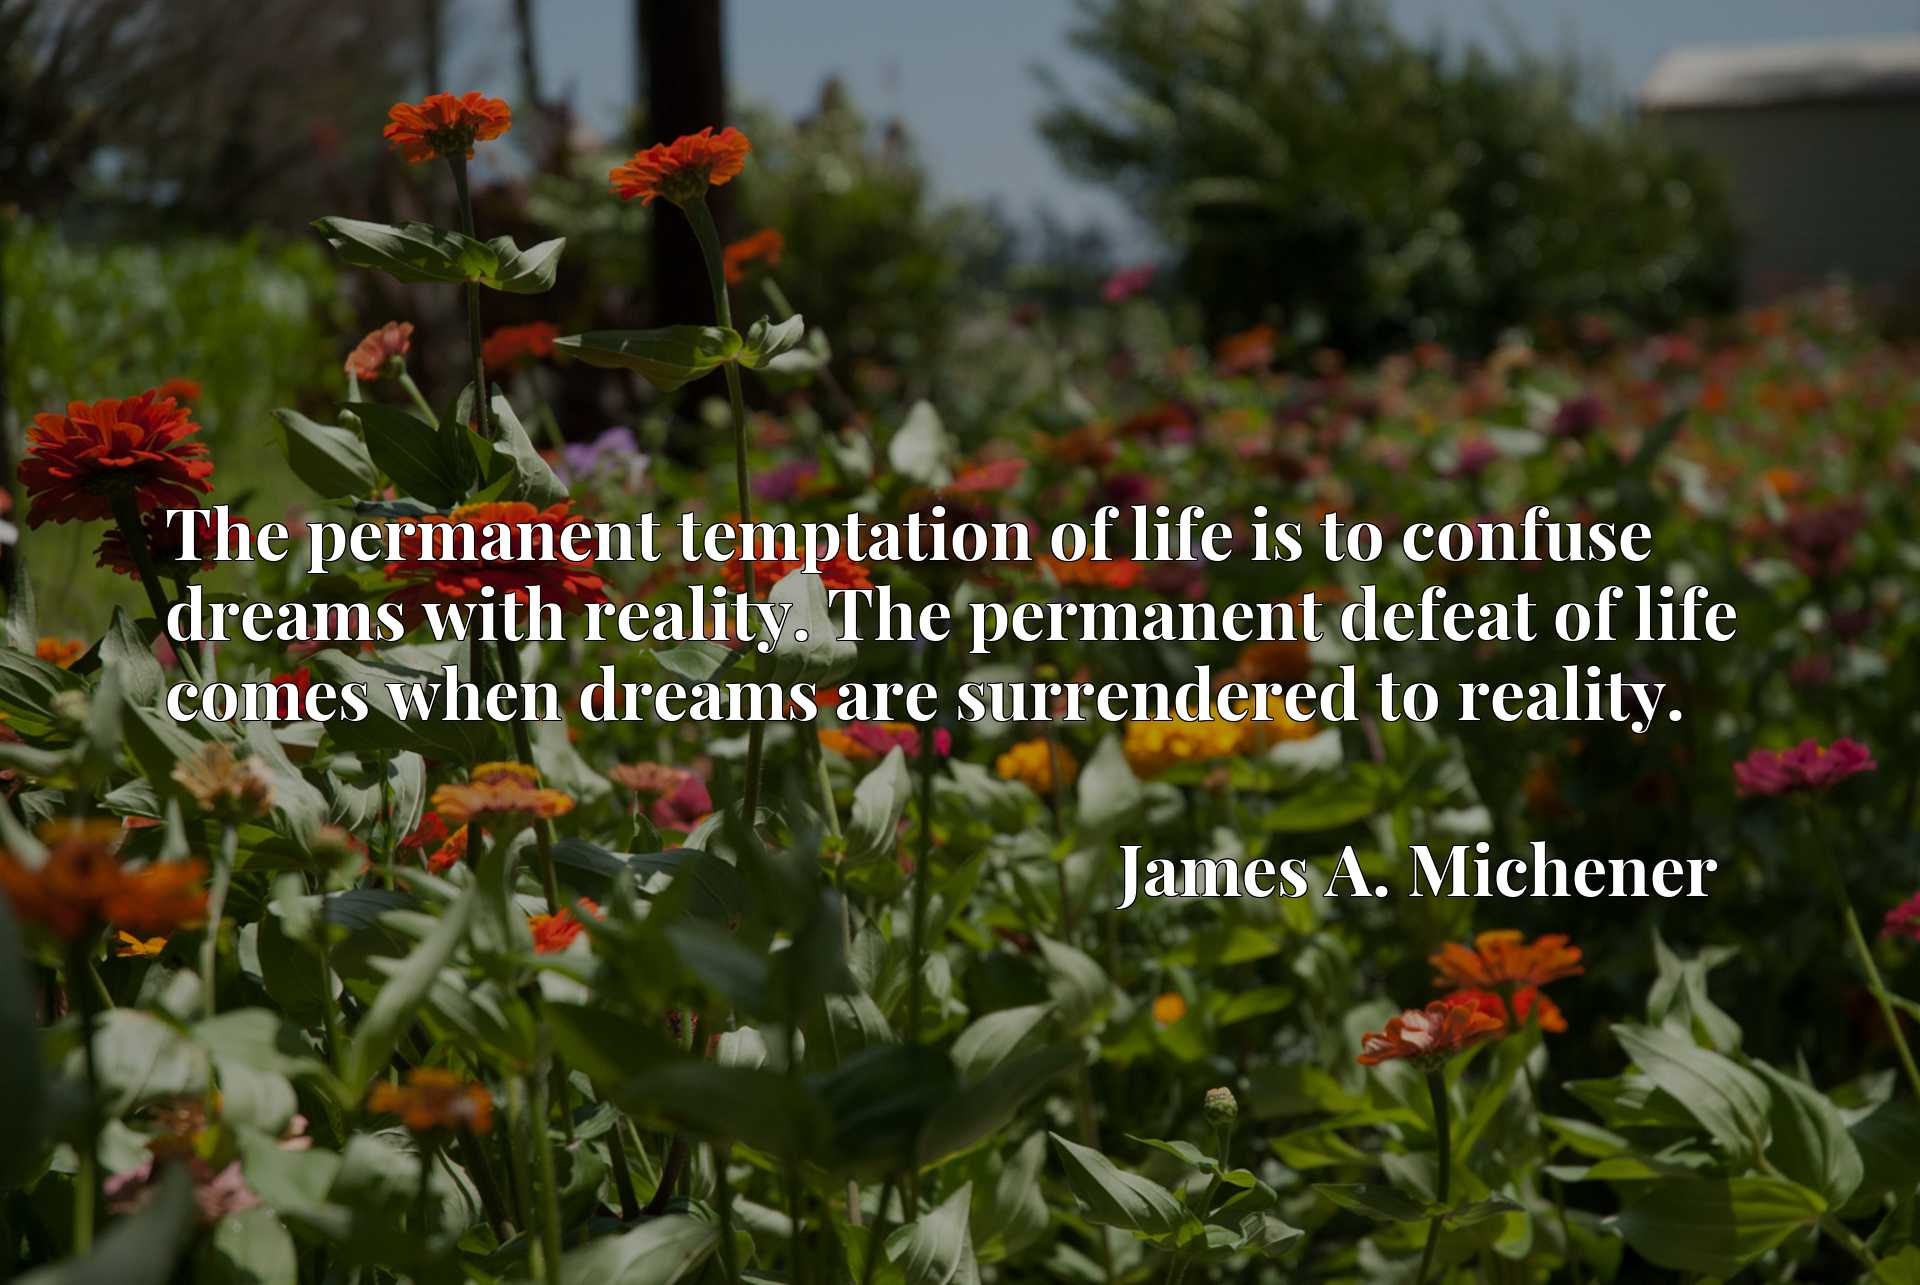 The permanent temptation of life is to confuse dreams with reality. The permanent defeat of life comes when dreams are surrendered to reality.